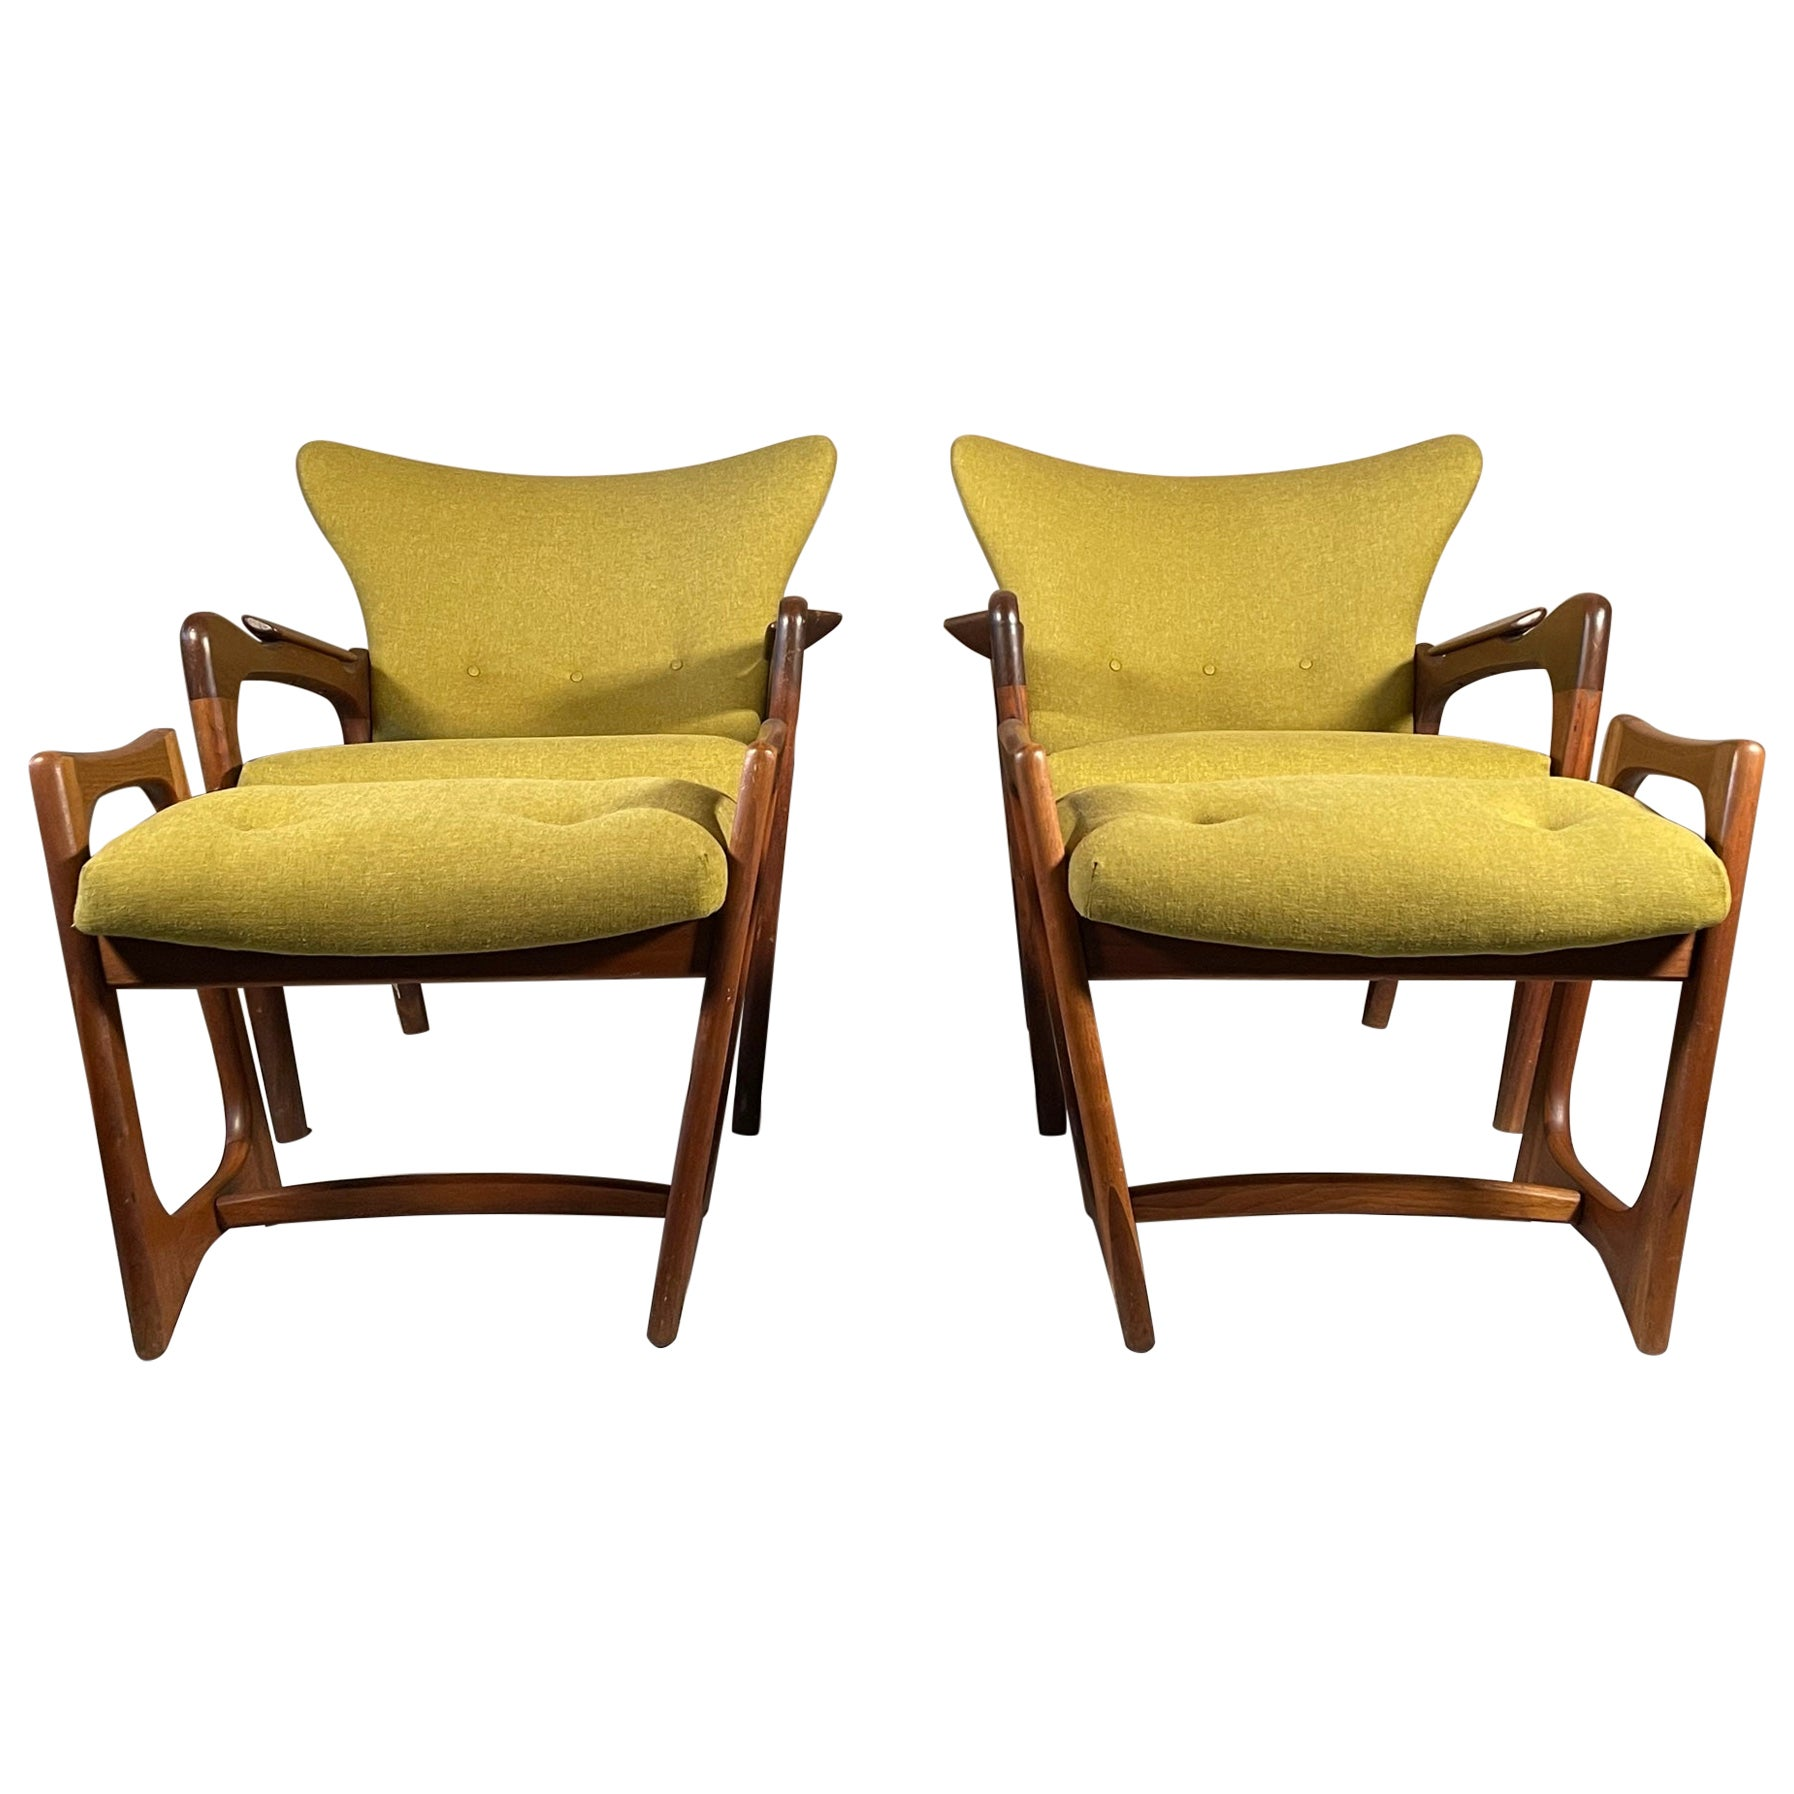 Unusual Adrian Pearsall Armchairs with Ottomans